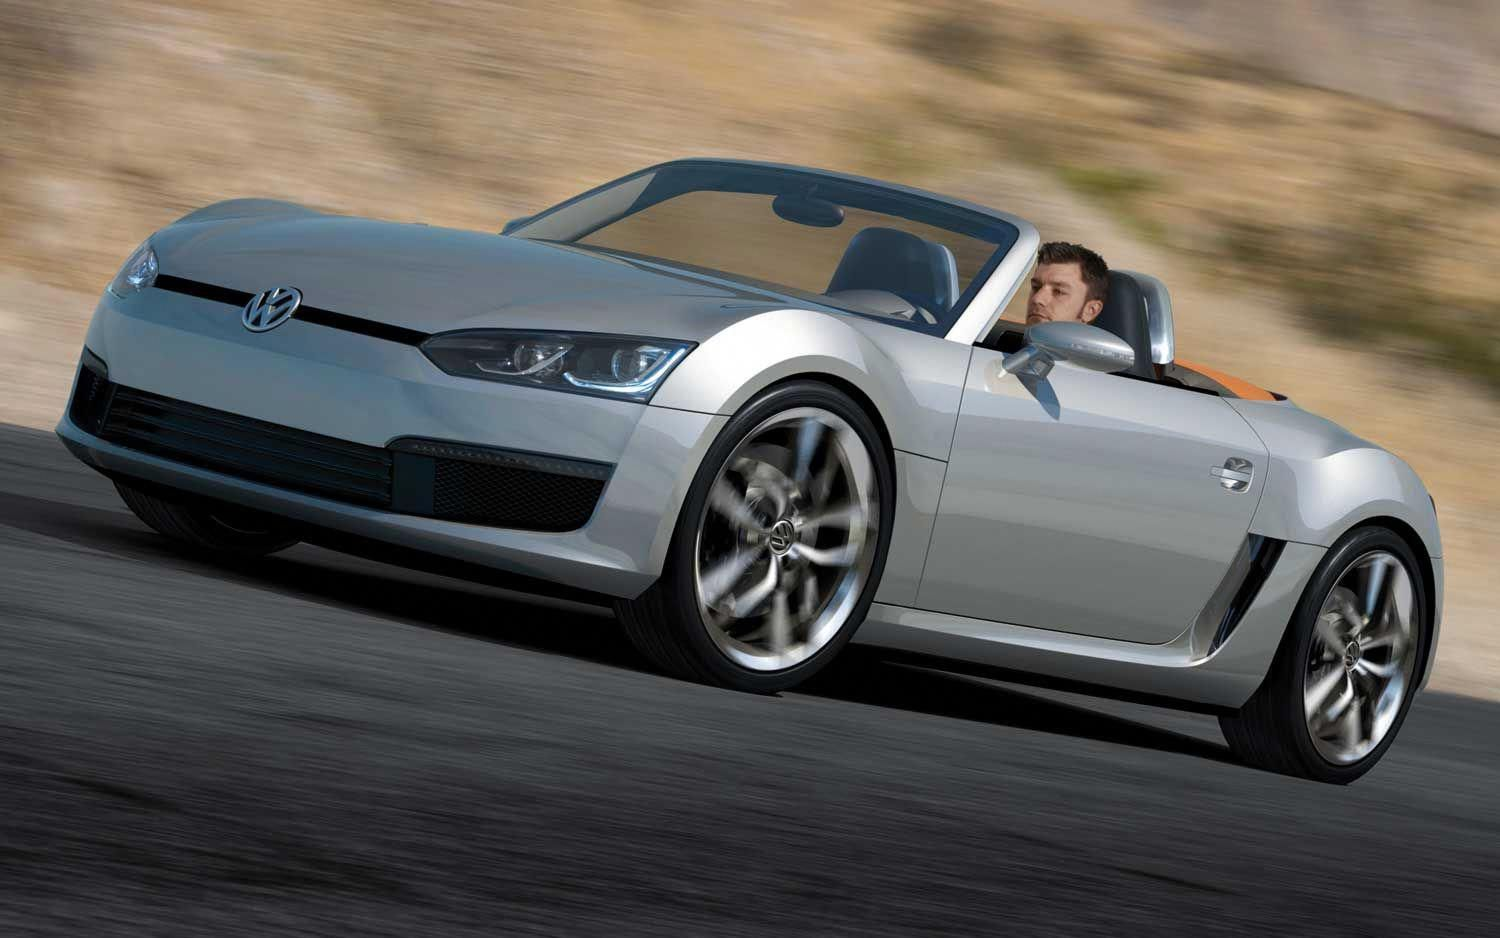 VW Reconsidering BlueSport Roadster? Here Are Our Top 5